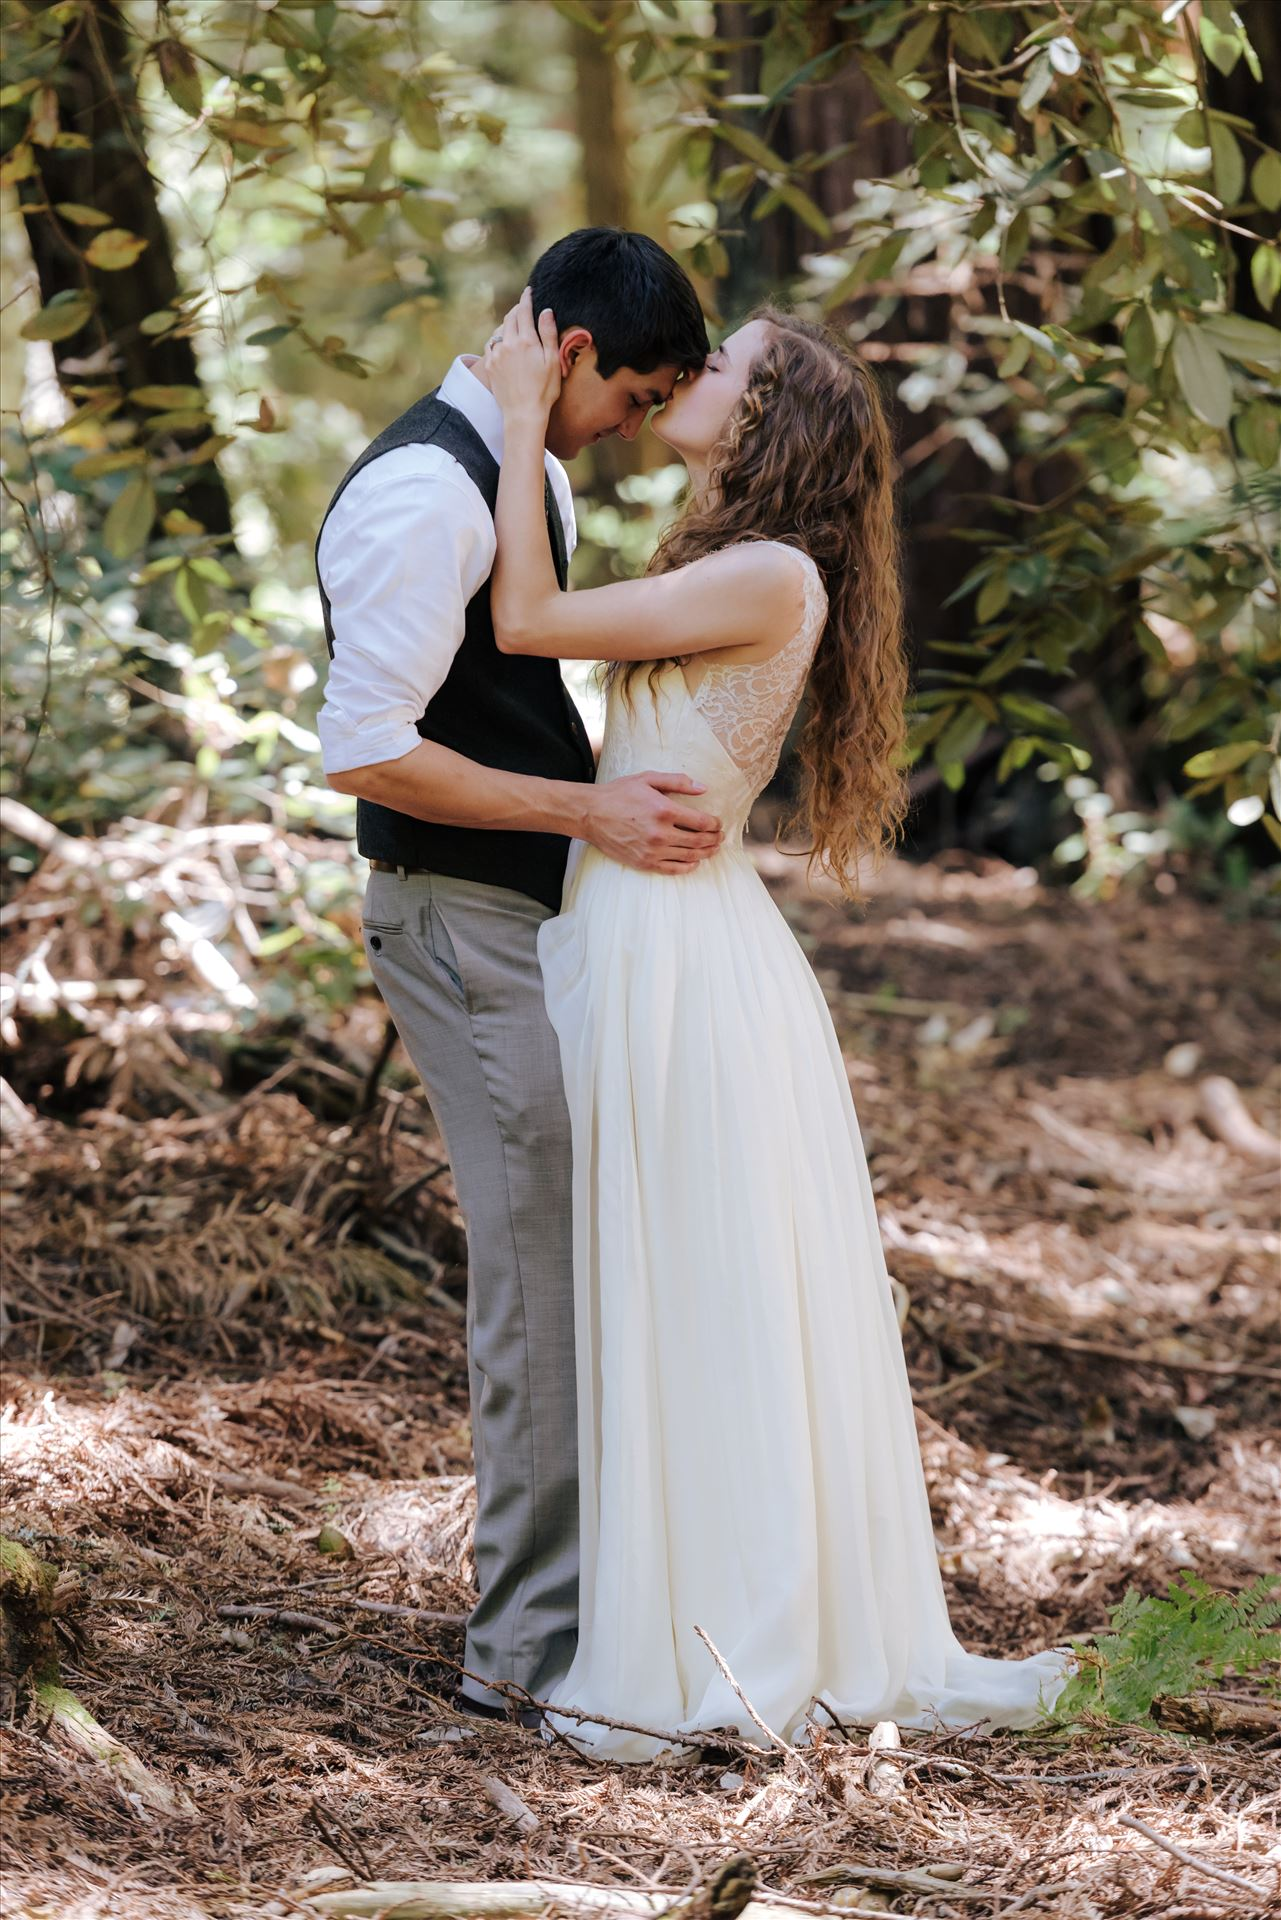 FW-6044.JPG - Mt Madonna wedding in the redwoods outside of Watsonville, California with a romantic and classic vibe by sarah williams of mirror's edge photography a san luis obispo wedding photographer.  Bride kisses groom in the trees by Sarah Williams